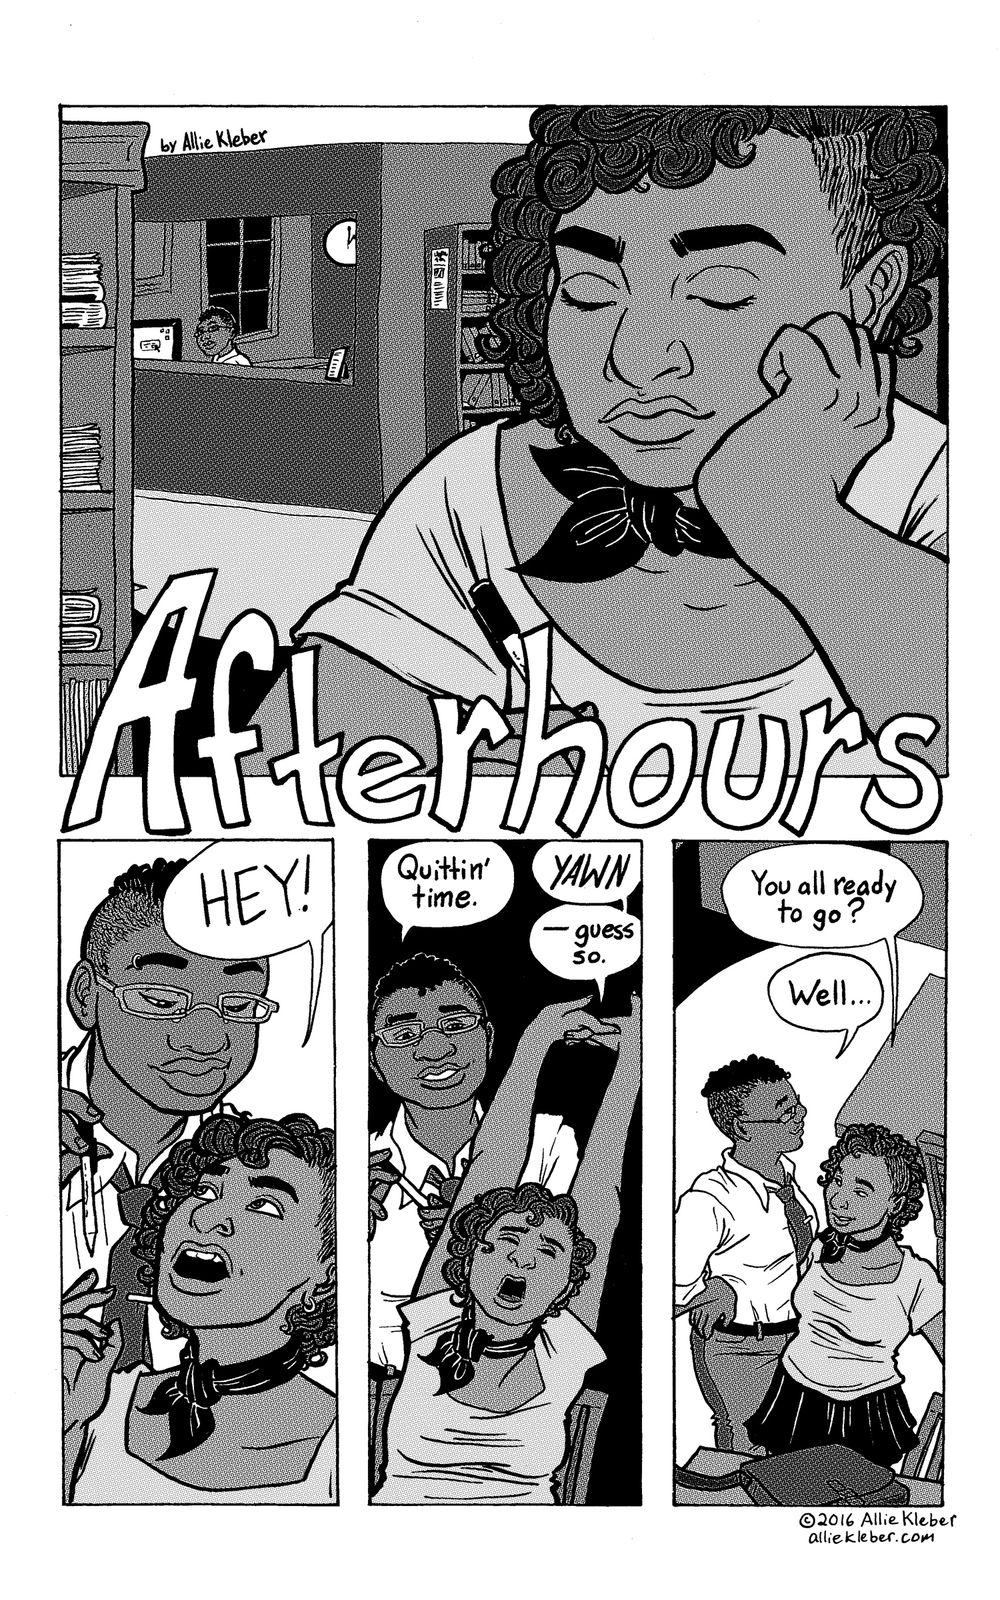 """Afterhours"" is a short piece of erotica created for   Erotic Synergy  , an anthology of erotic fiction & poetry by women and nonbinary people. (Mine is the only comic featured in the book.) NOT SAFE FOR WORK."